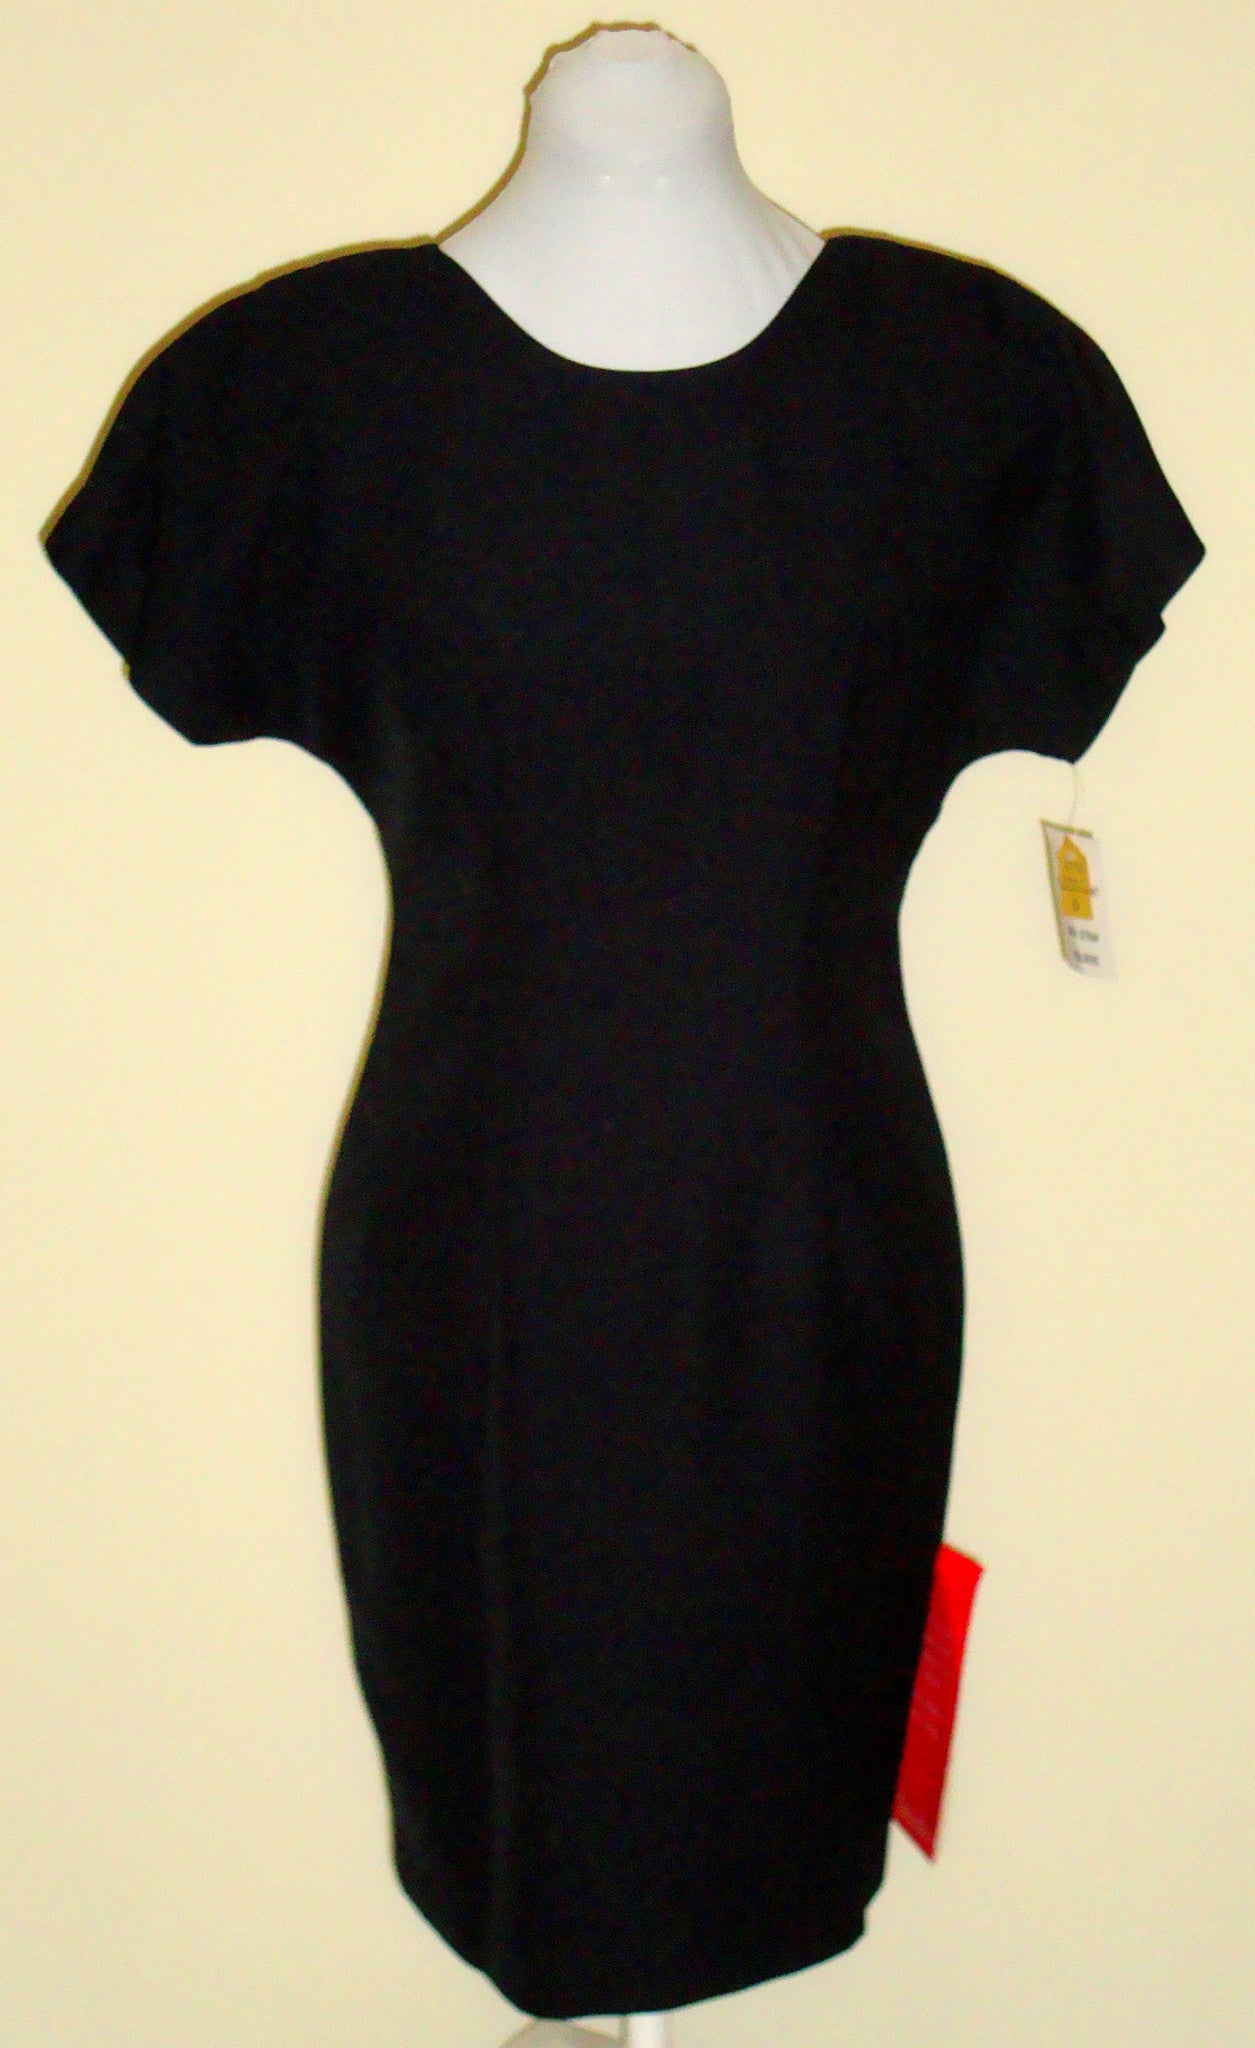 NWT CHADWICK'S BLACK CREPE CAREER COCKTAIL DRESS SMALL 6P